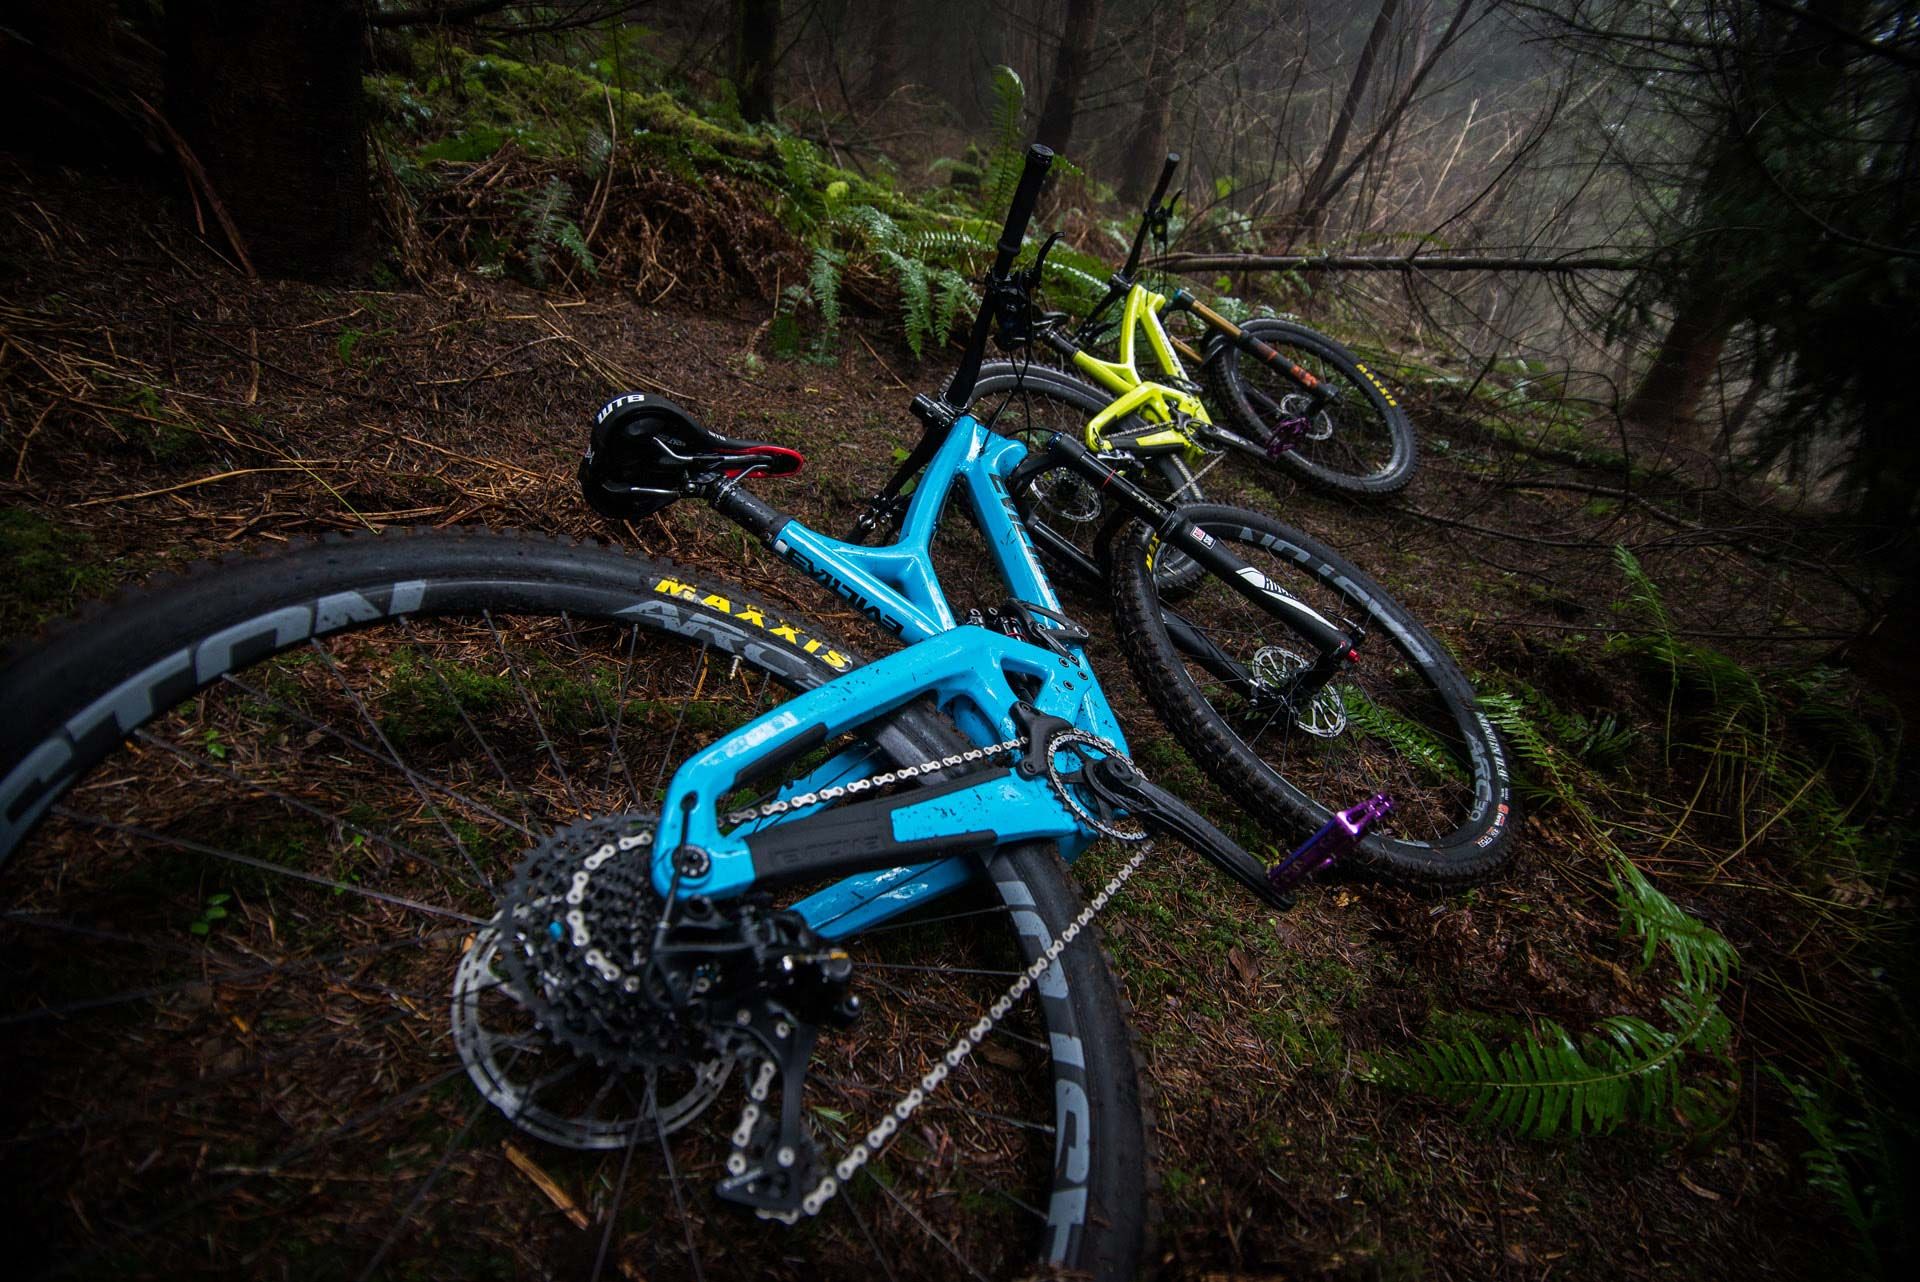 The Wreckoning in Megaladon Blue and the Insurgent in Slimeball Yellow, lounging in their natural habitat.